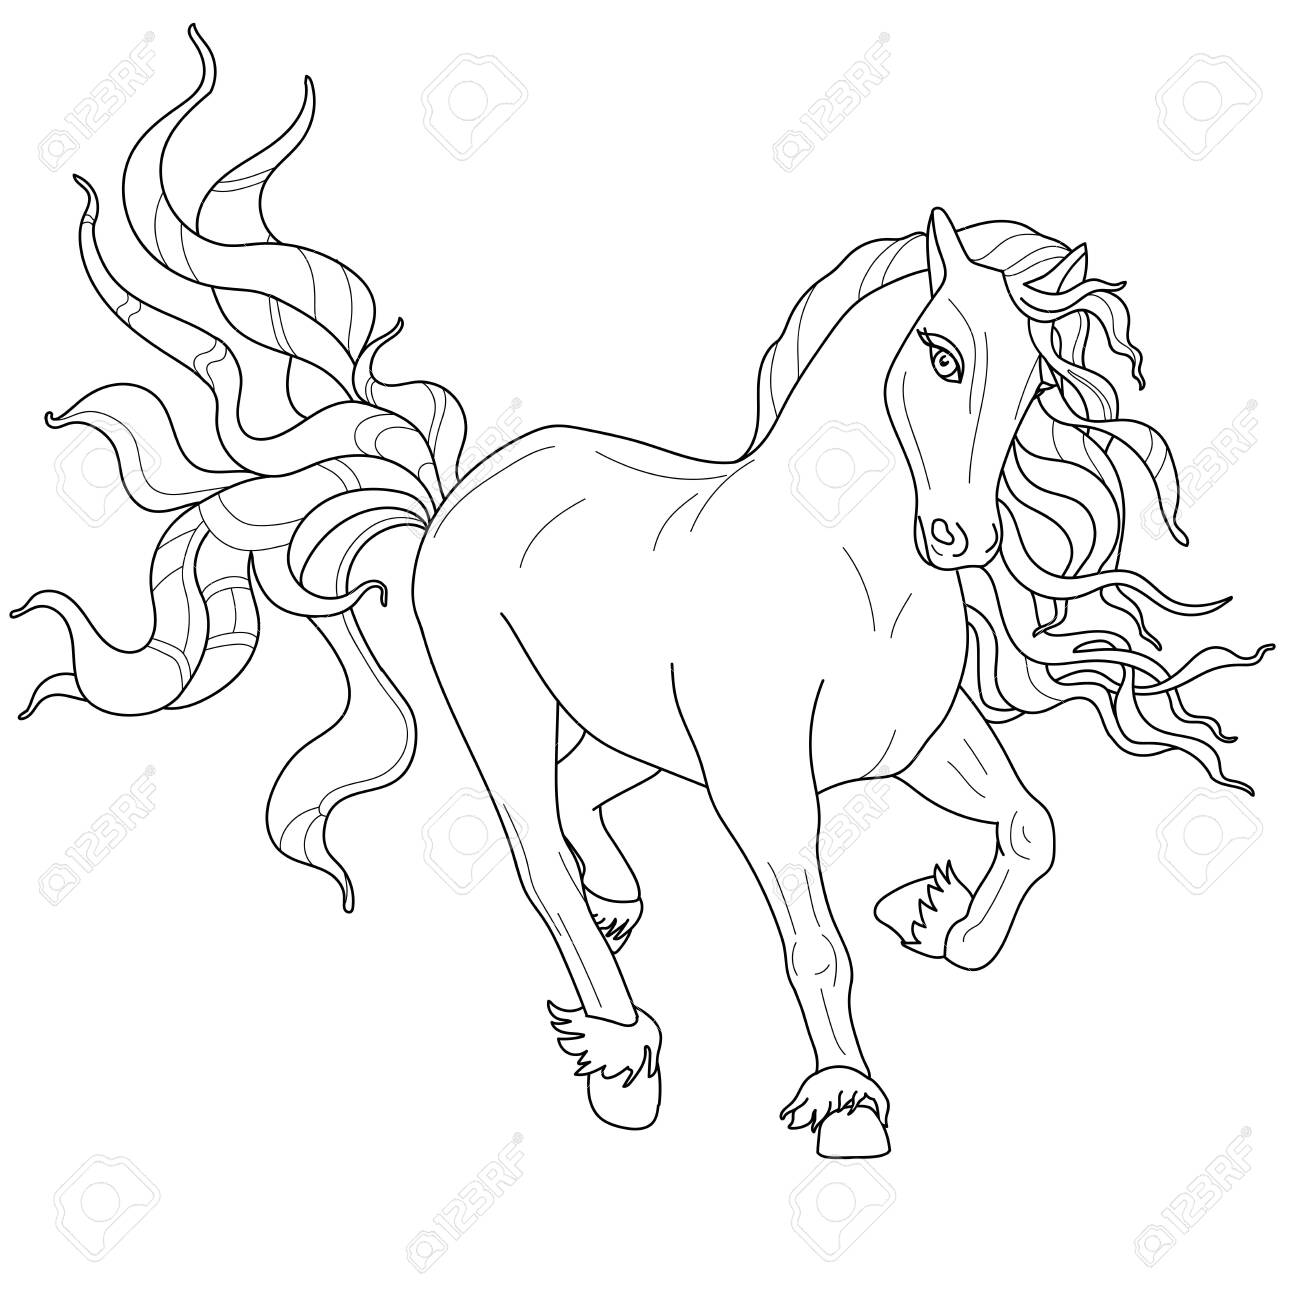 Horses Coloring Pages Image Of A Horse In Line Art Style Royalty Free Cliparts Vectors And Stock Illustration Image 137523092